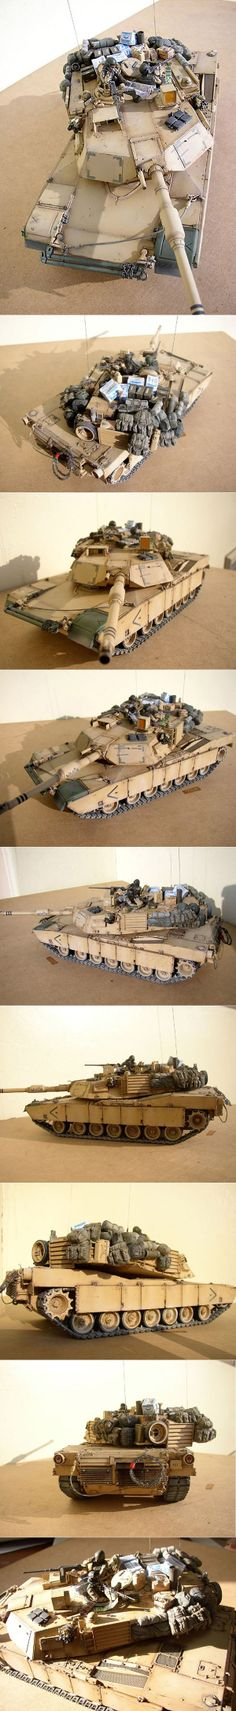 M1A1 1/35 Scale Model.  Looks like this might be the Academy kit.  Outstanding job overall, really captures the look of a tank in combat.